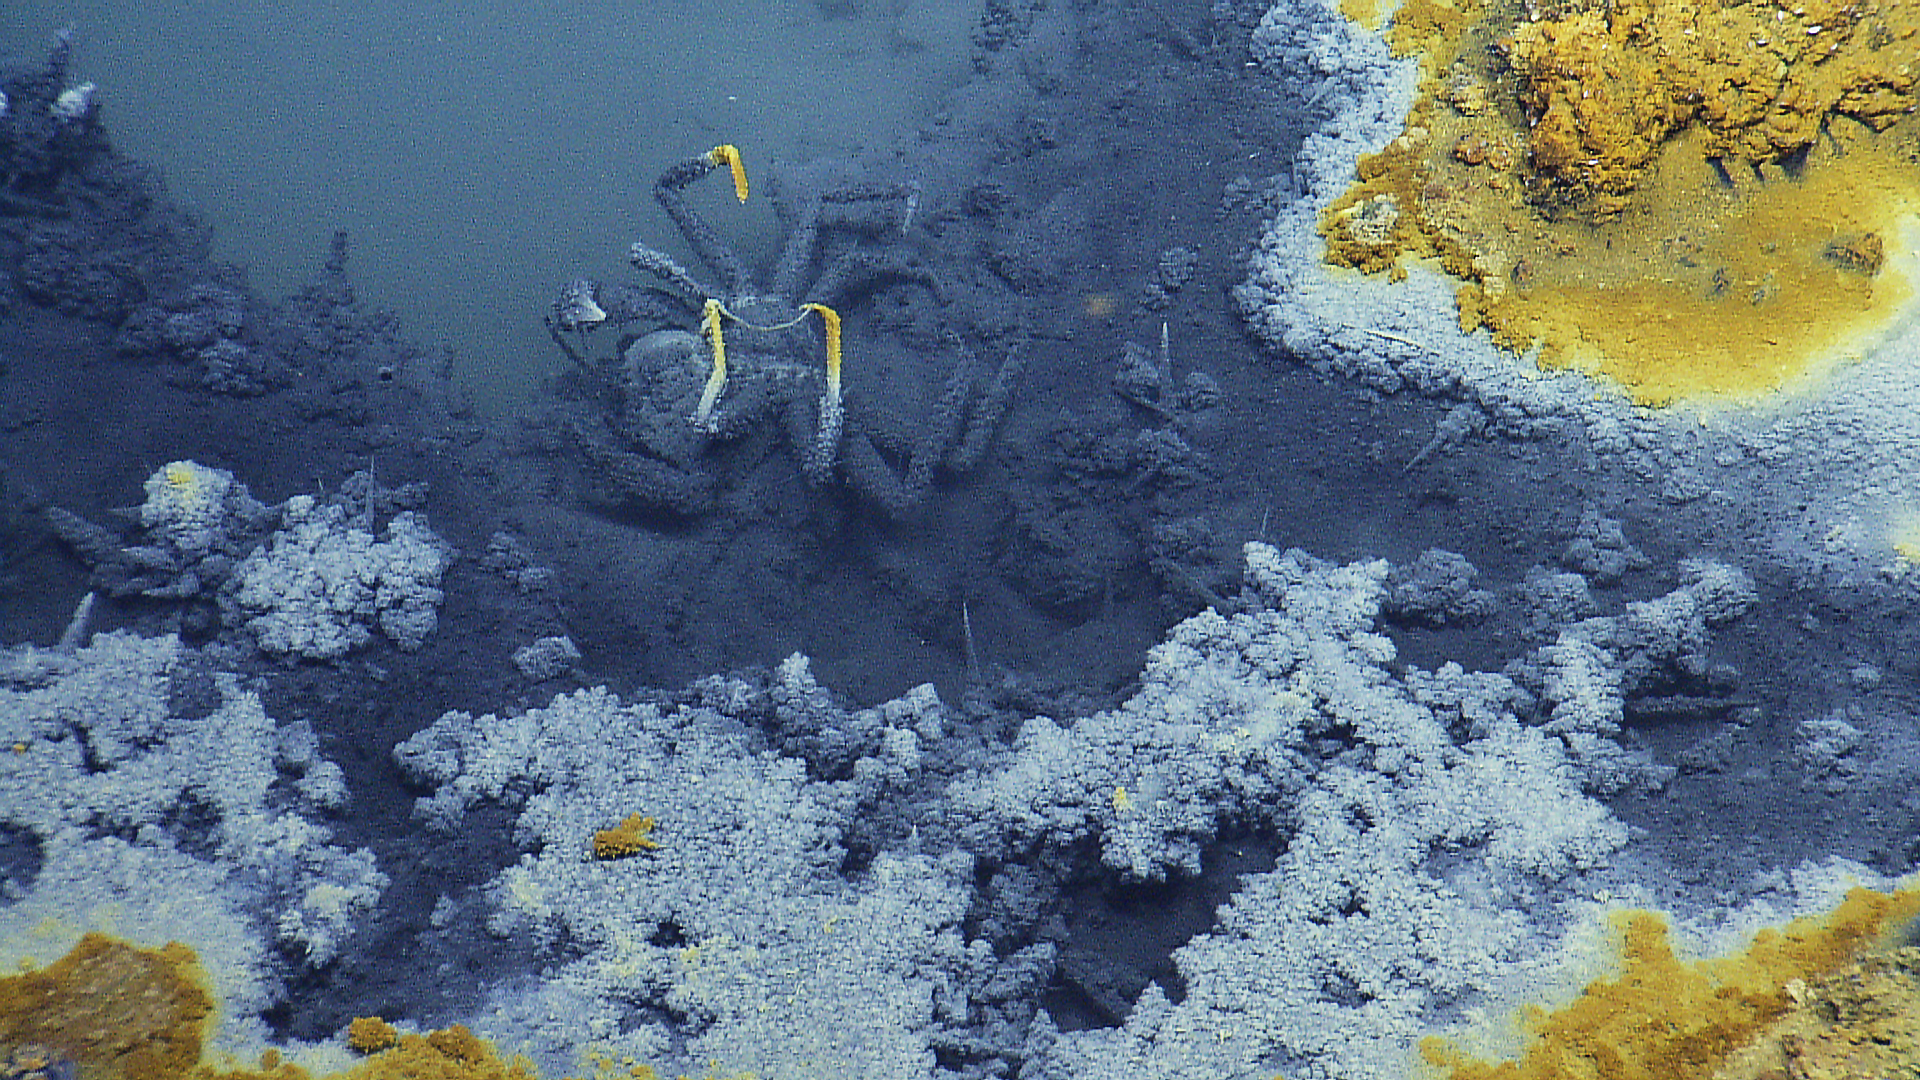 A deceased crab is seen inside of a brine pool on the ocean floor.